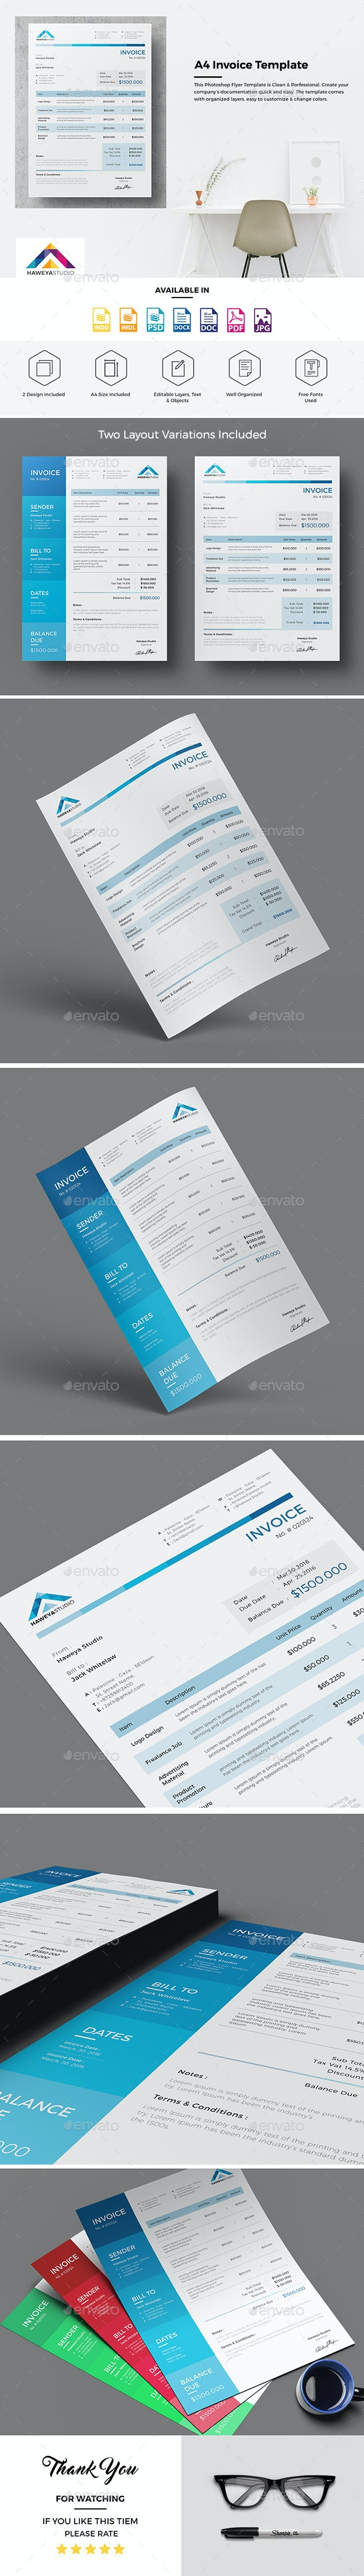 Haweya Invoice Template - Proposals & Invoices Stationery